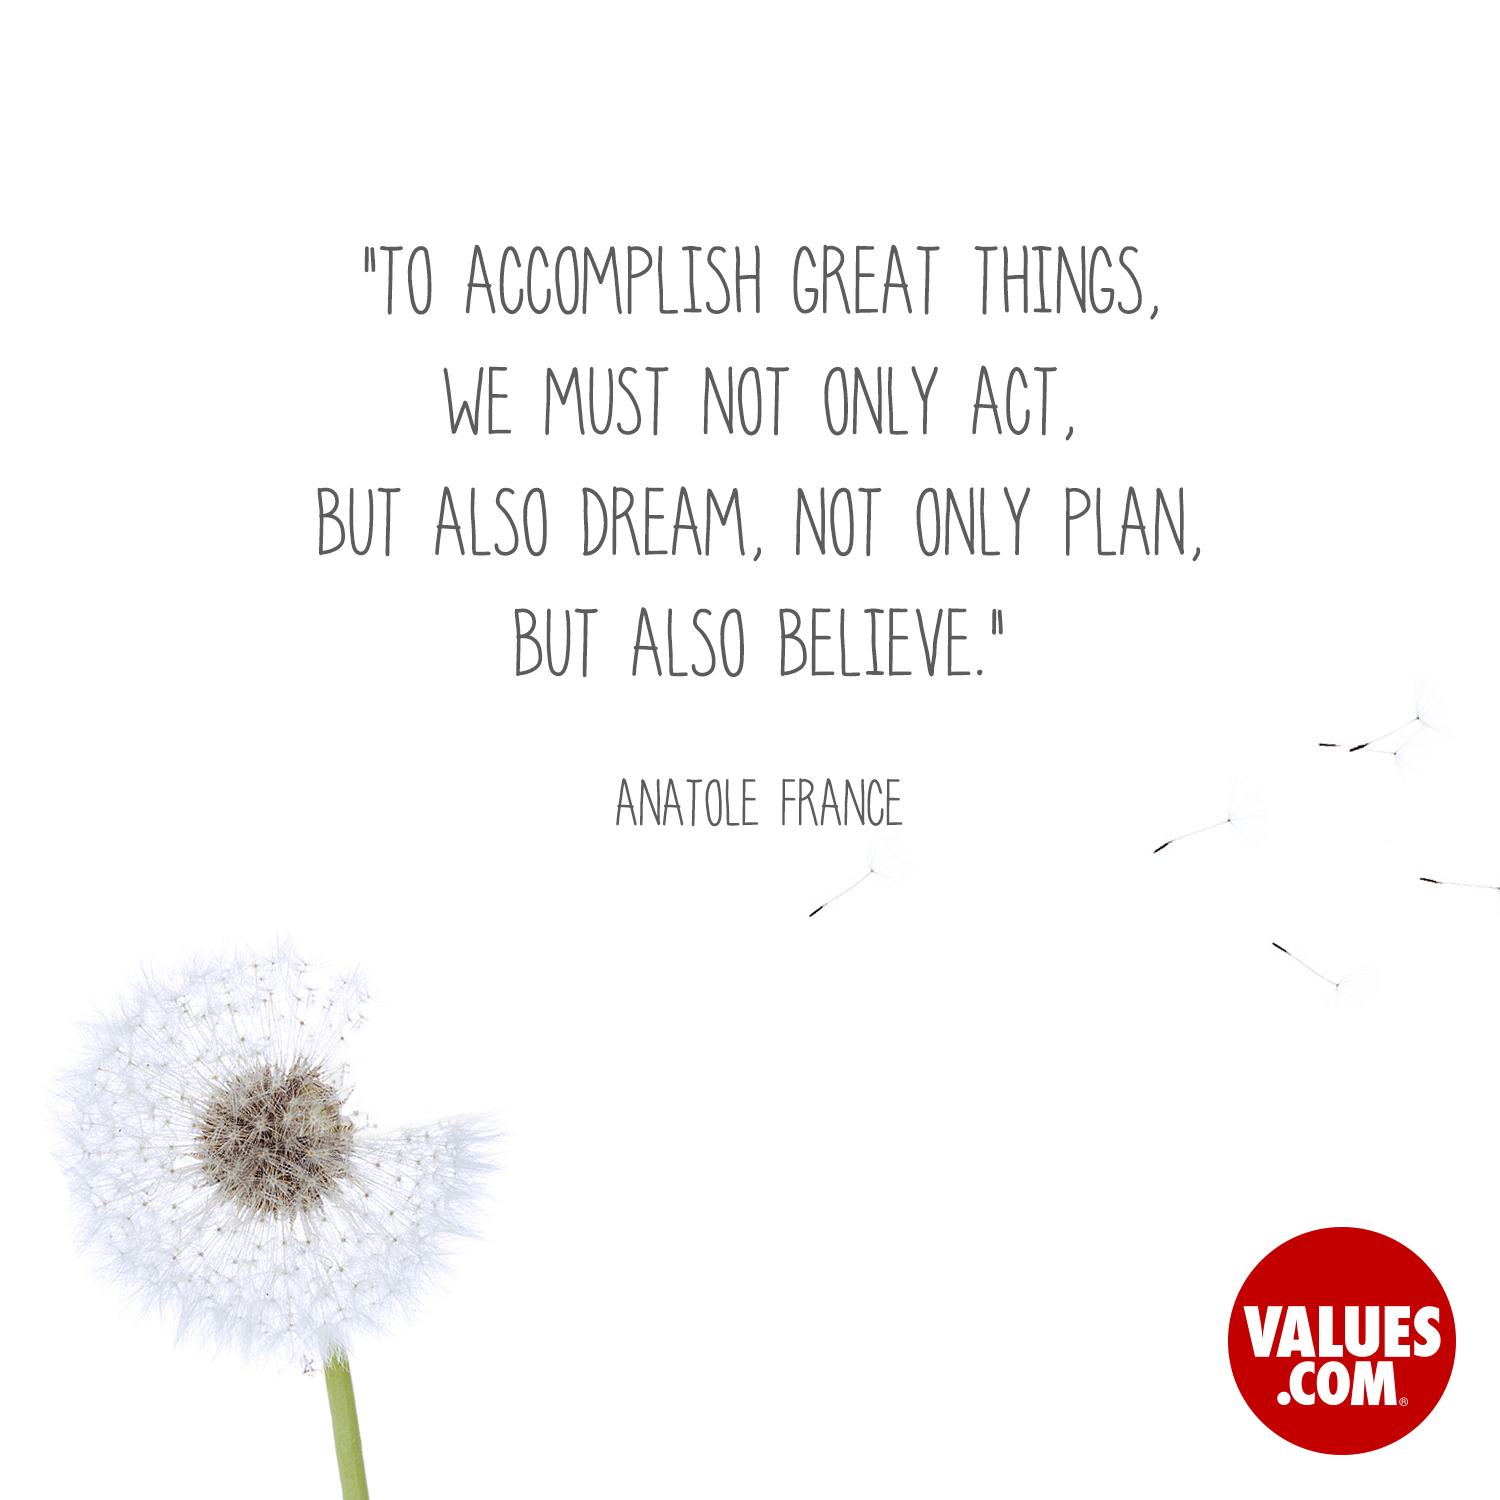 To accomplish great things, we must not only act, but also dream, not only plan, but also believe. —Anatole France